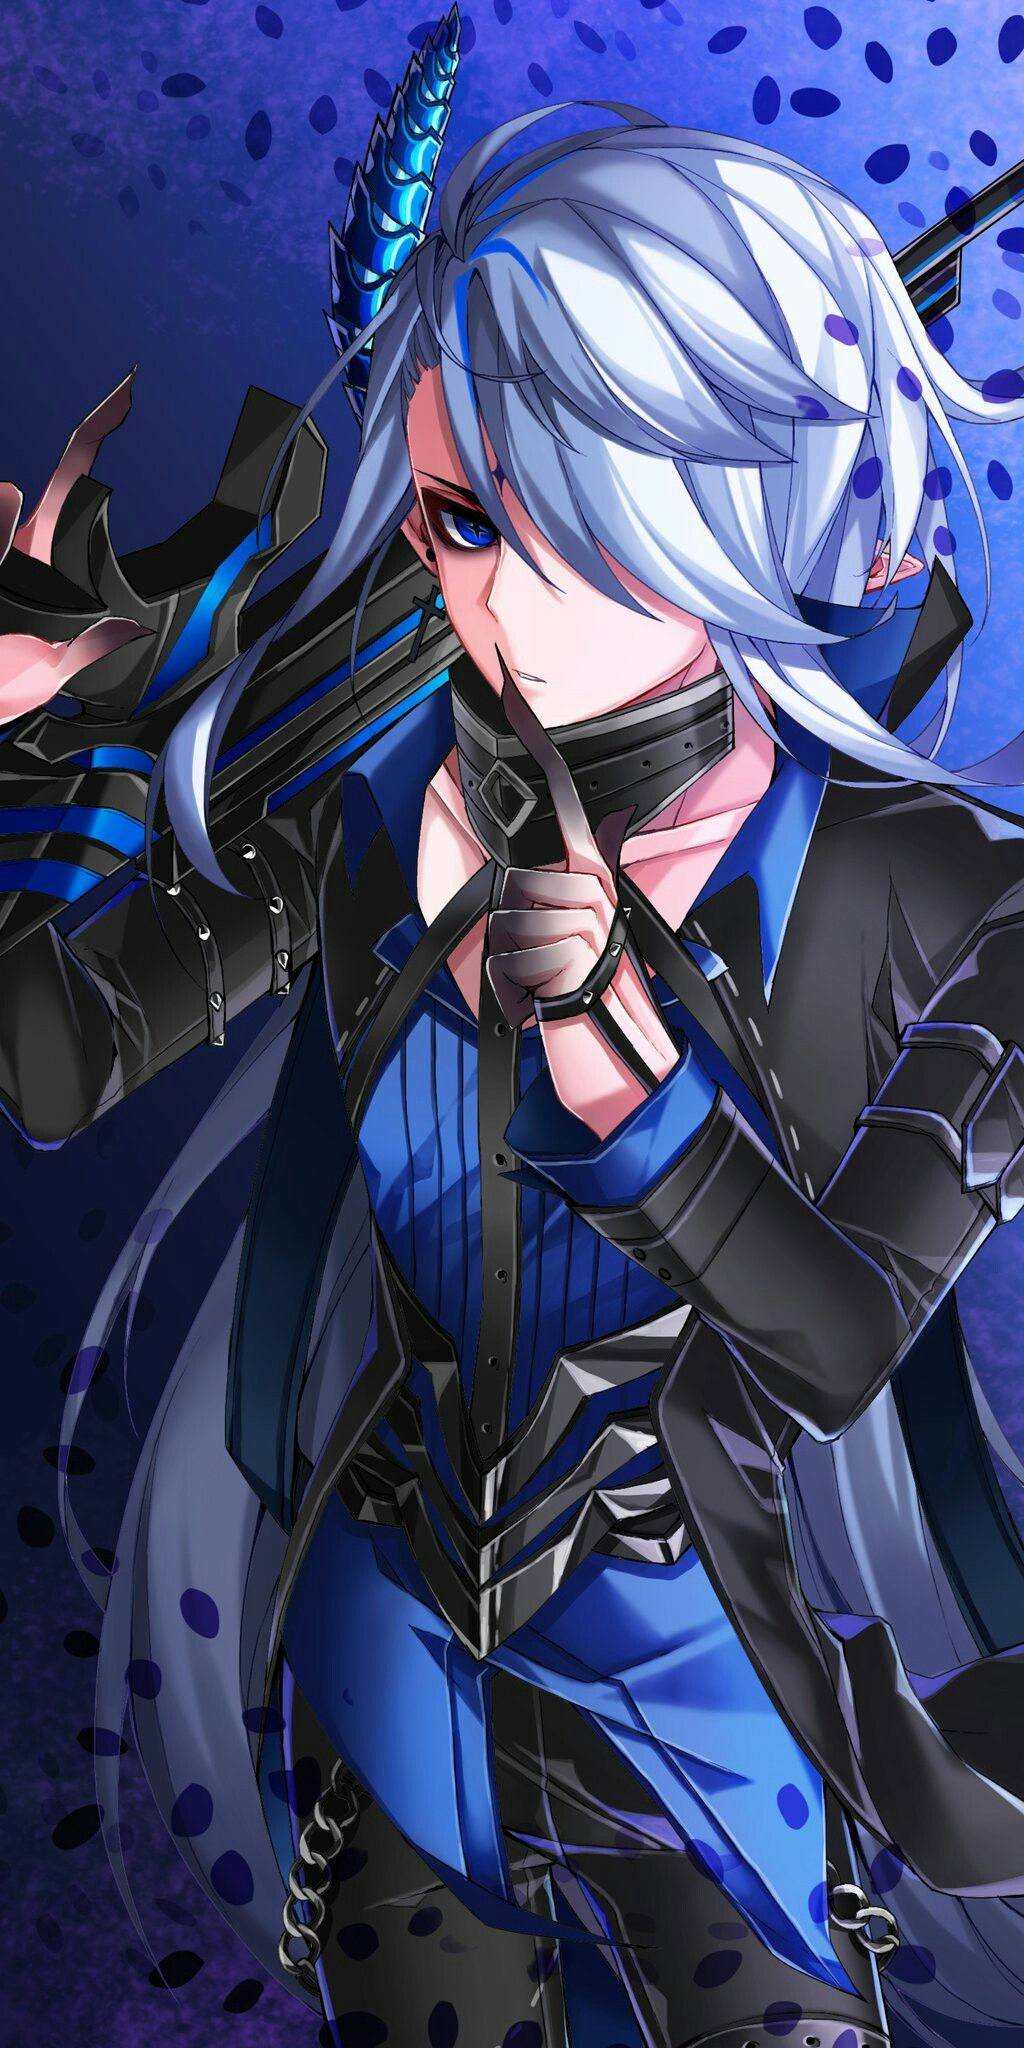 Ciel eslword elsword in 2018 pinterest manga anime and personnage - Personnage manga fille ...